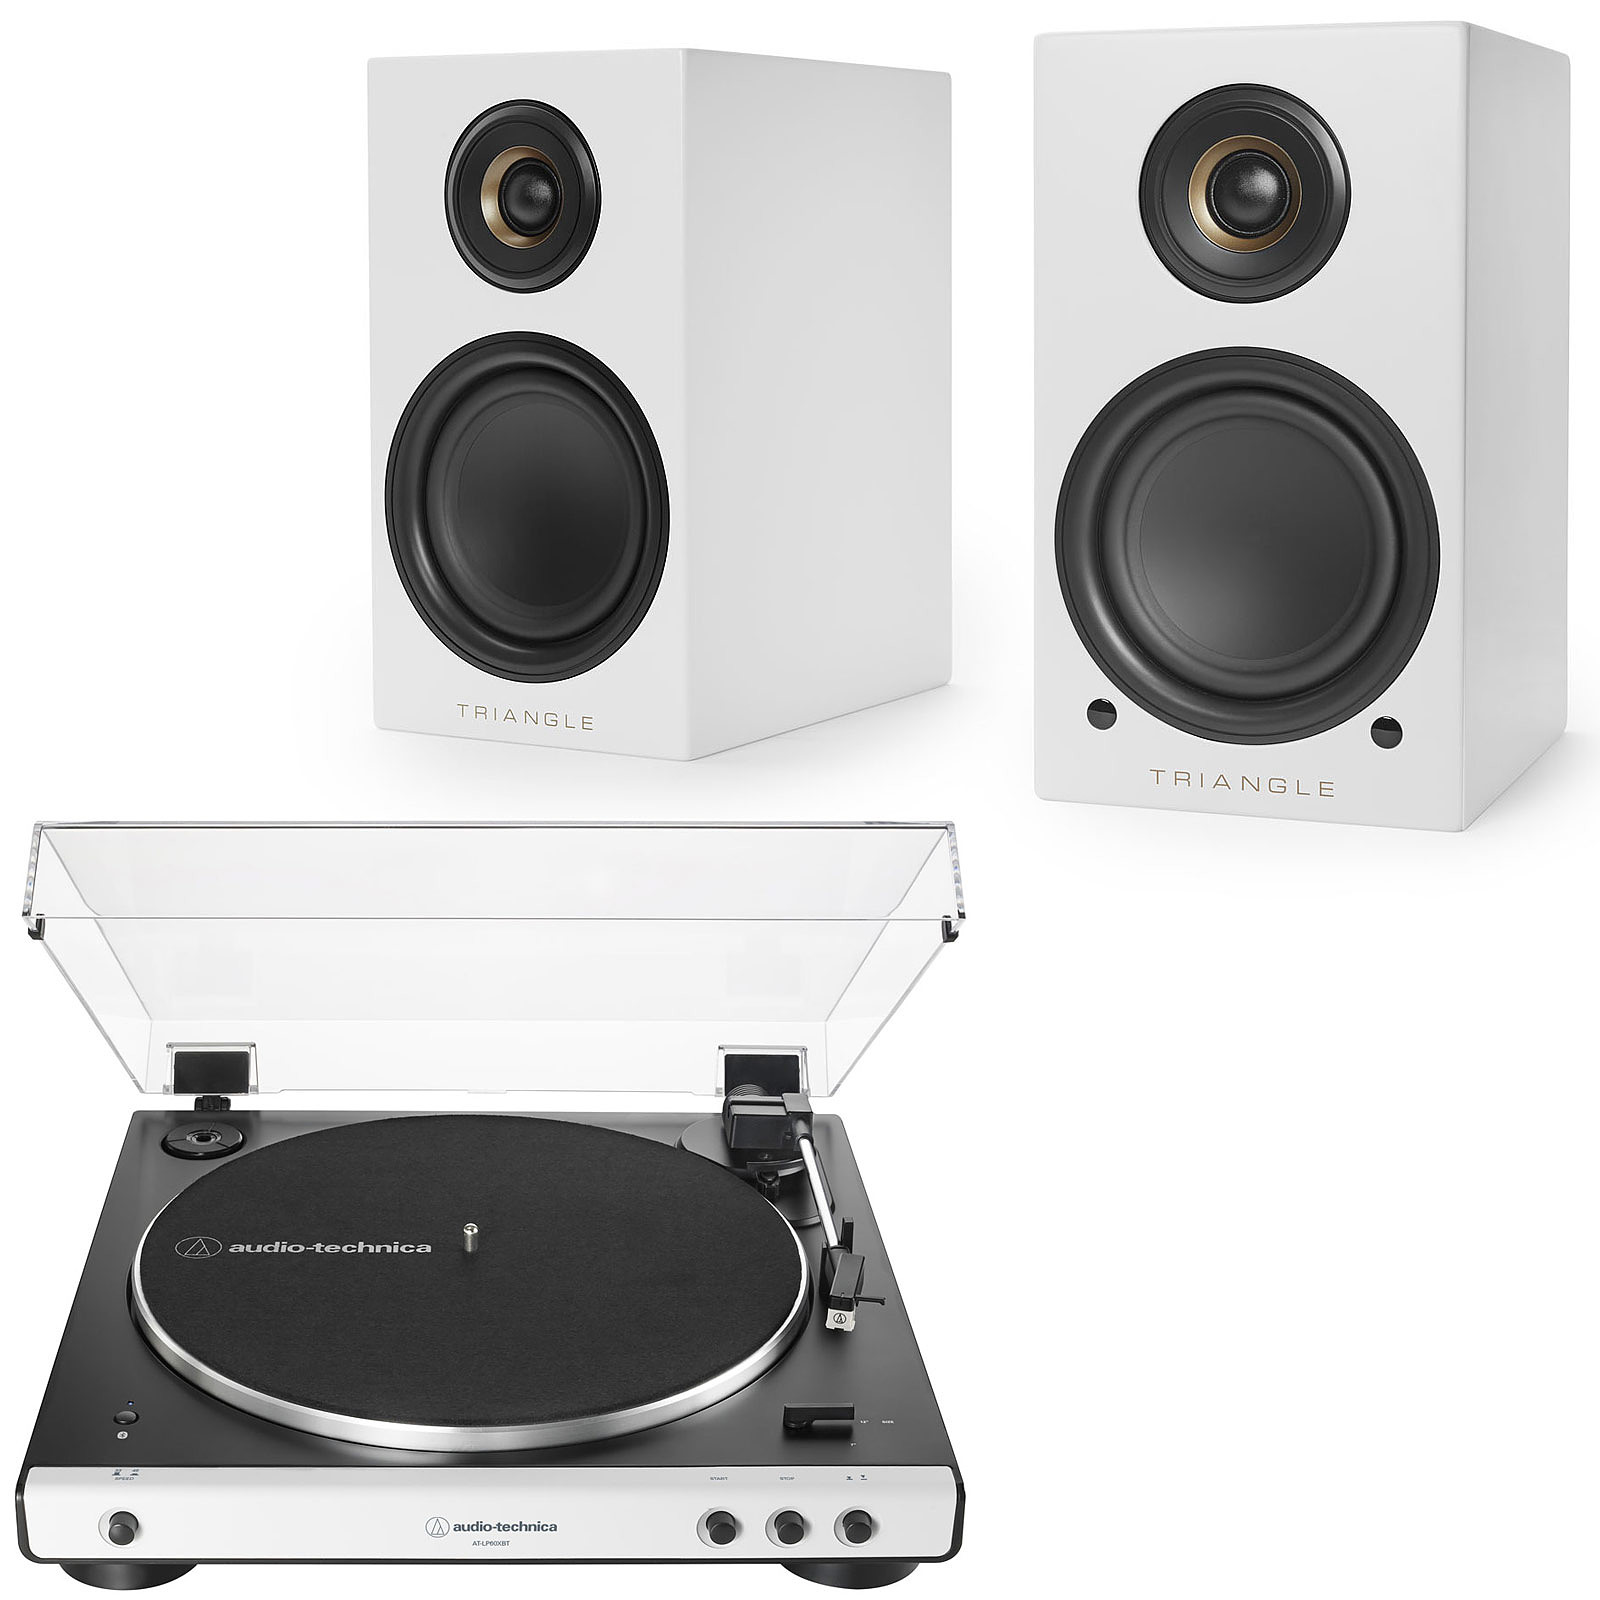 Audio-Technica AT-LP60XBT Blanc + Triangle Elara LN01A Blanc mat